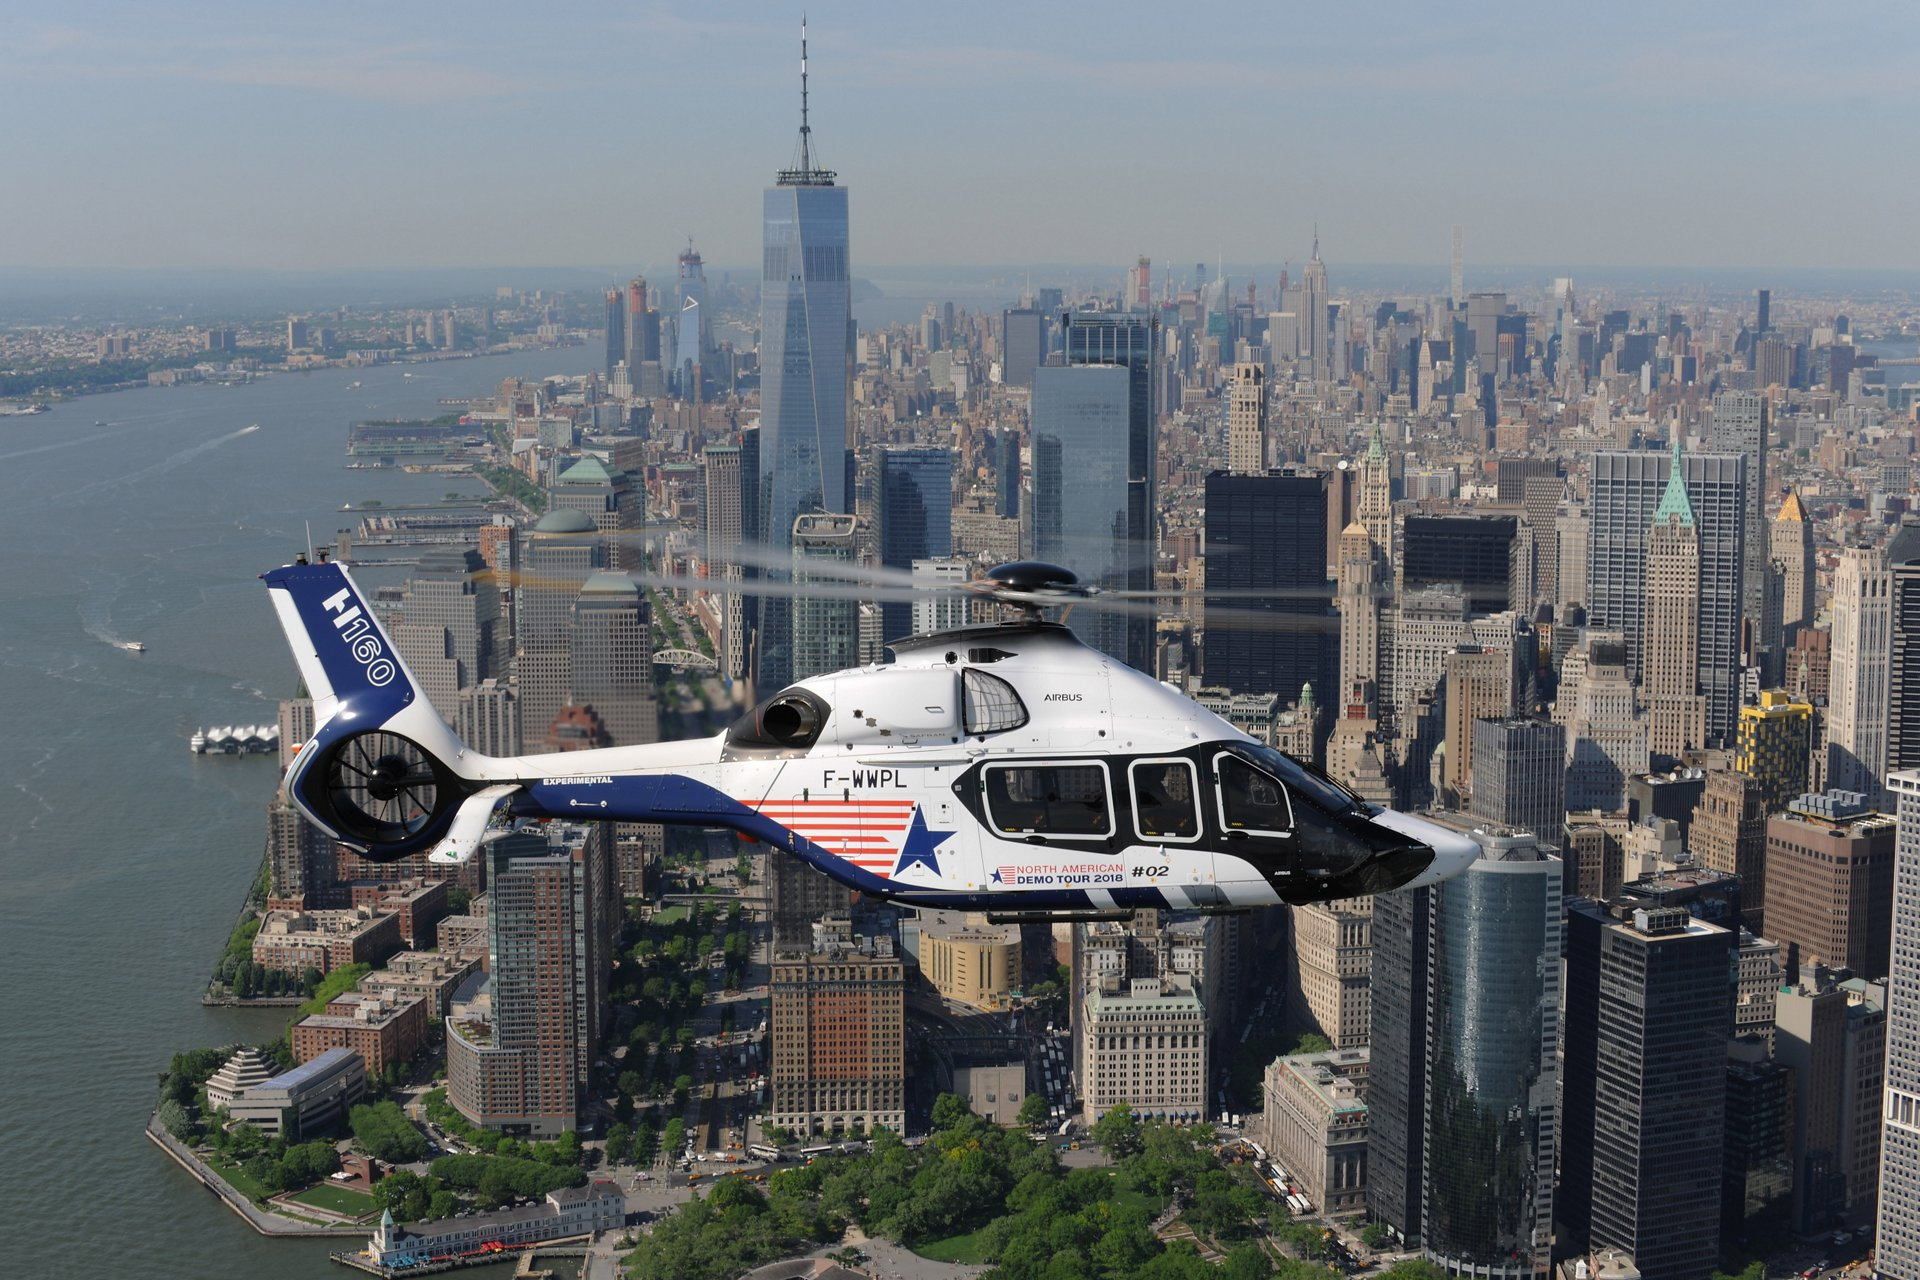 Airbus Helicopters North America increases orders and market share in 2018